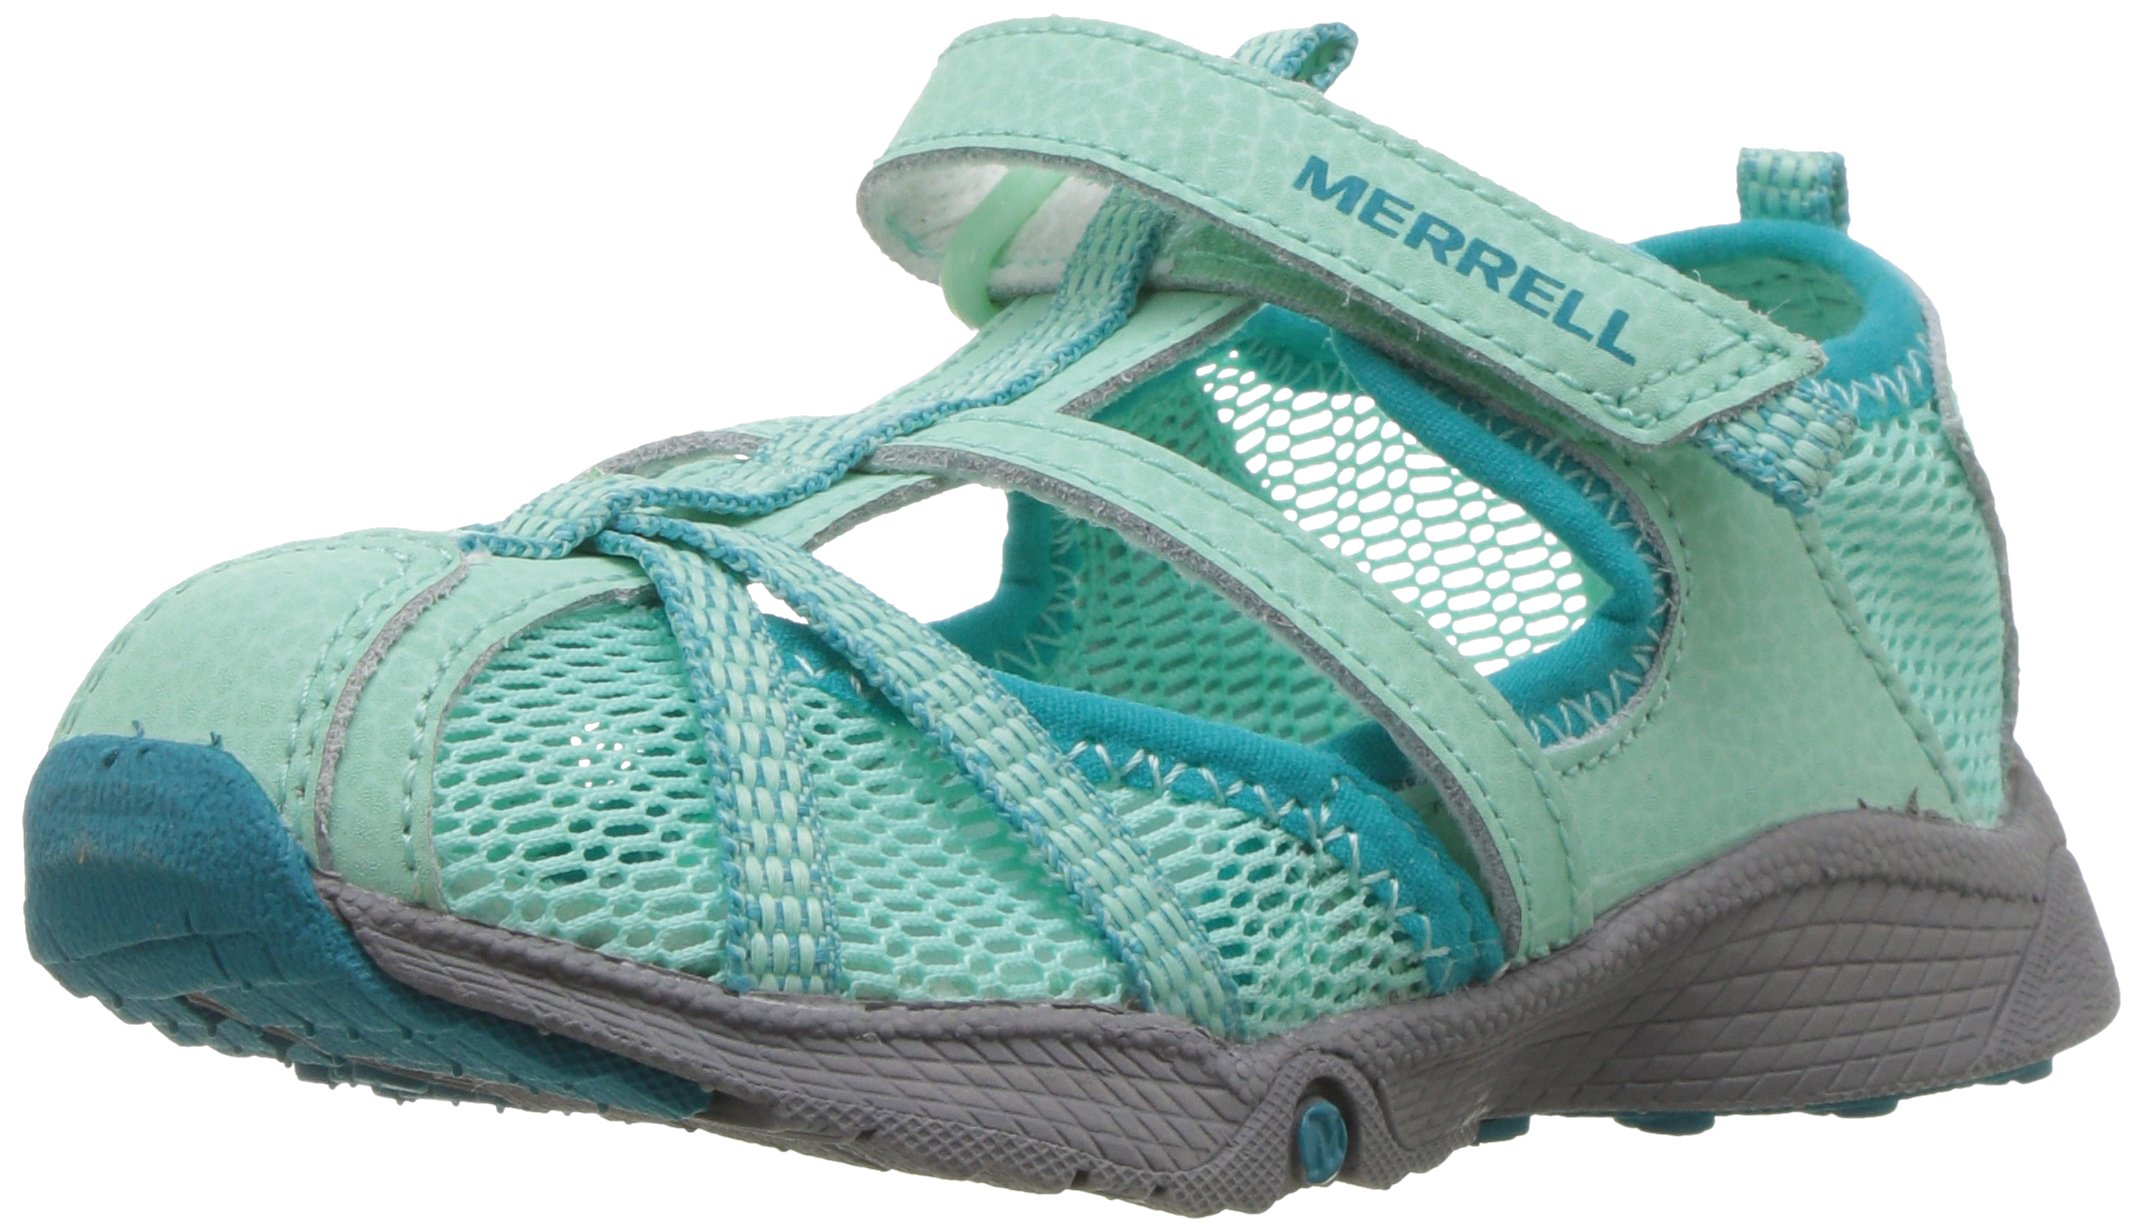 Merrell Hydro Monarch Water Sandal (Toddler/Little Kid/Big Kid), Turquoise, 6 W US Toddler